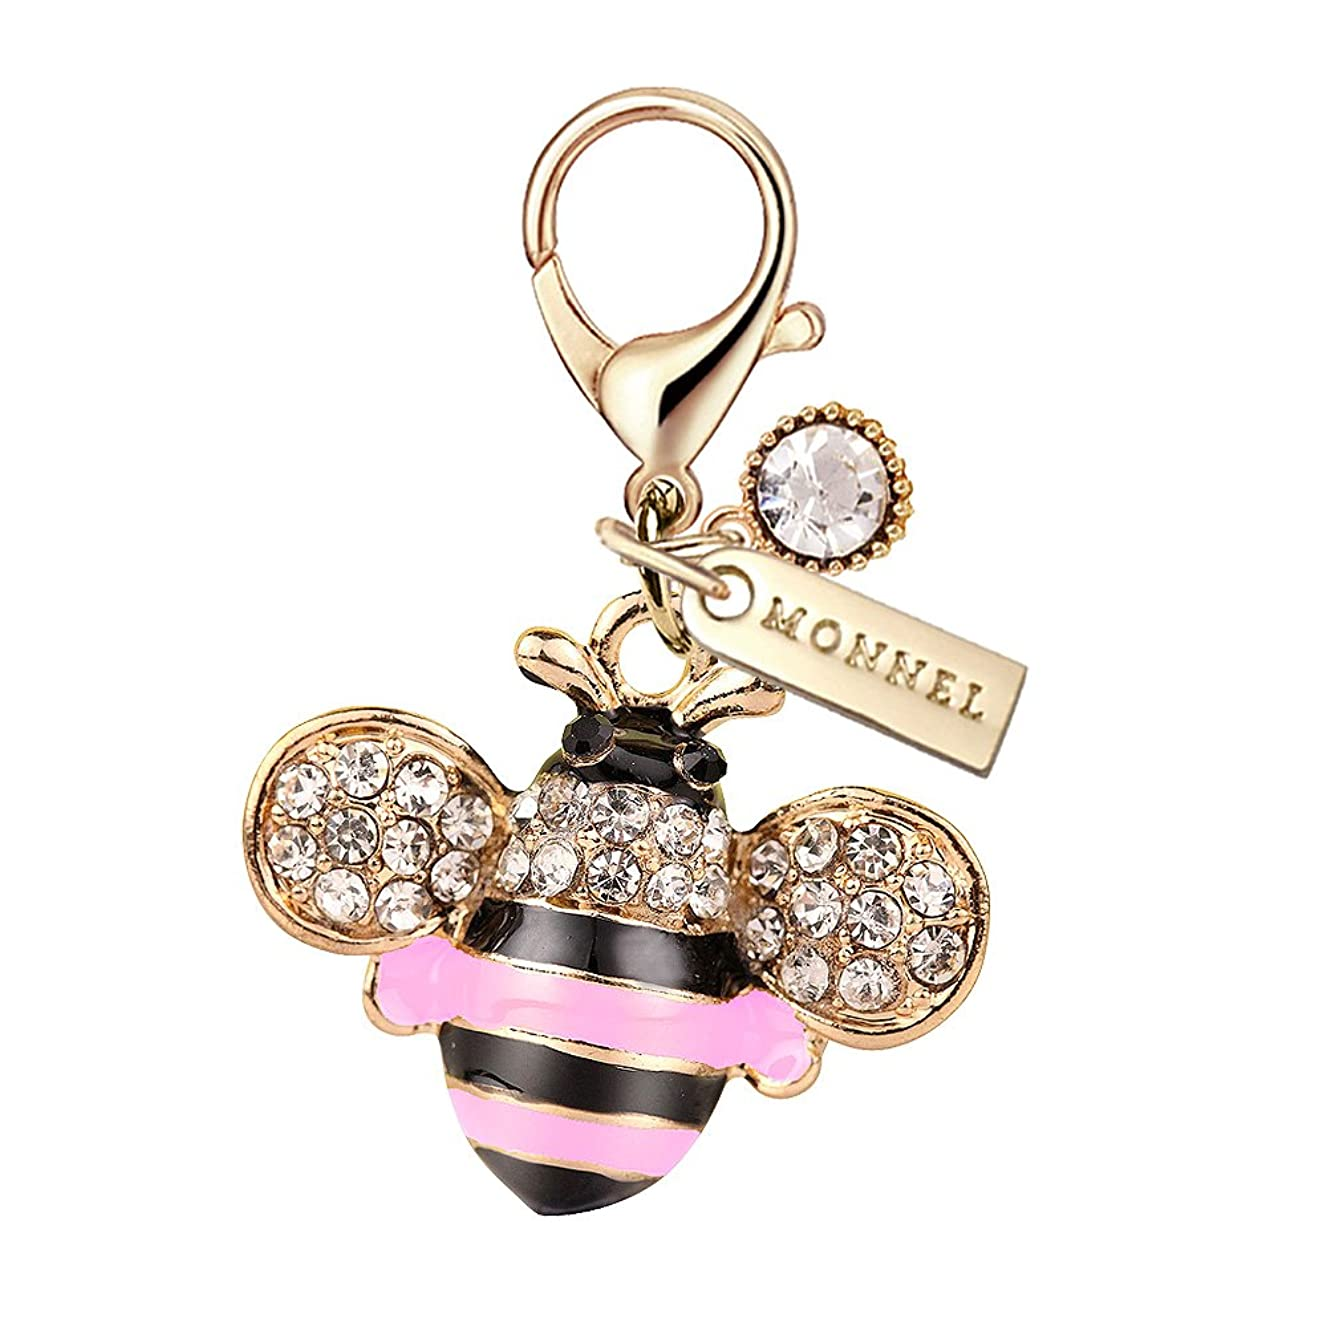 MC65 New Arrival Cute Crystal Pink Bee Lobster Charms Pendants with Pouch Bag (1 Piece)